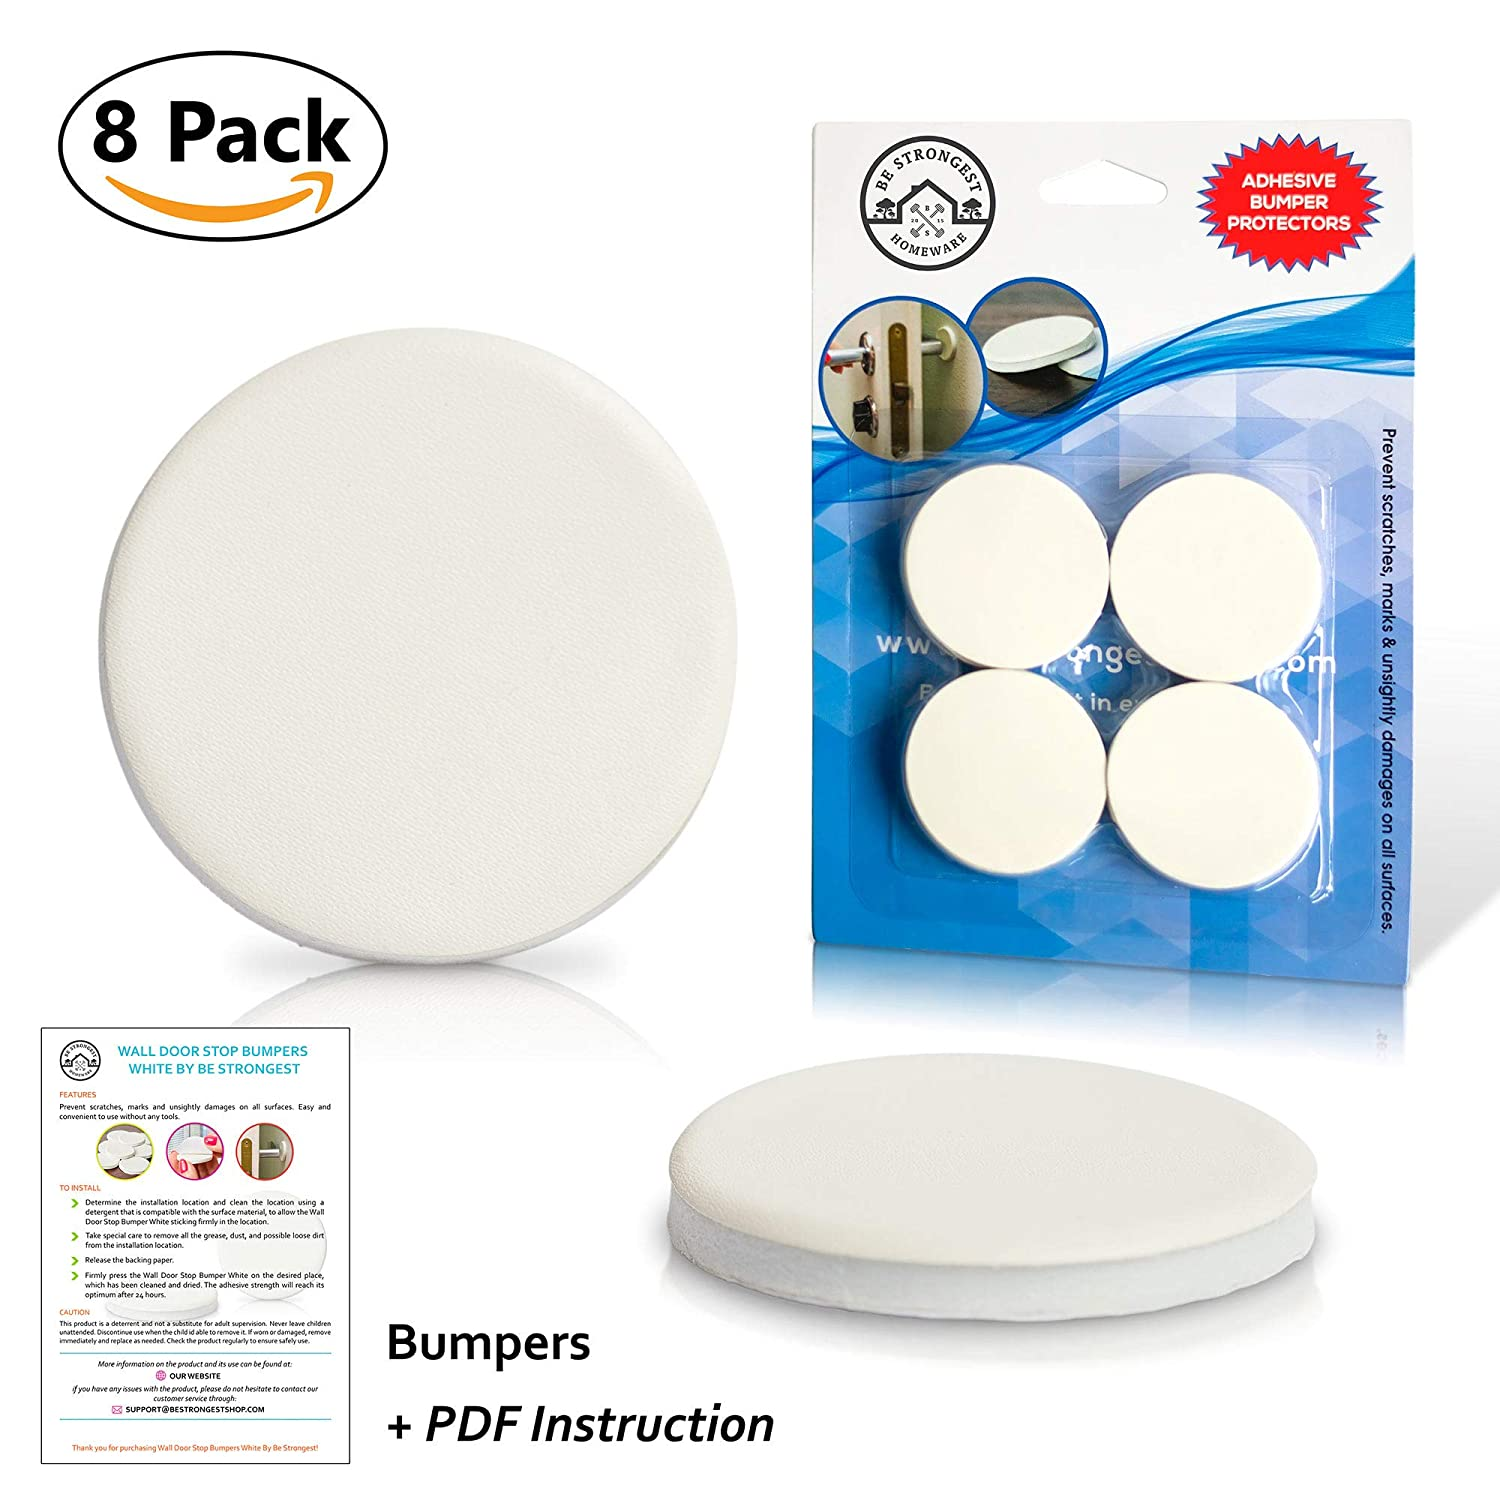 Wall Door Stop Bumpers by Be Strongest - White Soft Rubber Pads, 8 Pack - Self Adhesive Protector - Sound Dampening - Guard Your Wall Against Damage from Your Door Handle Be Strongest shop